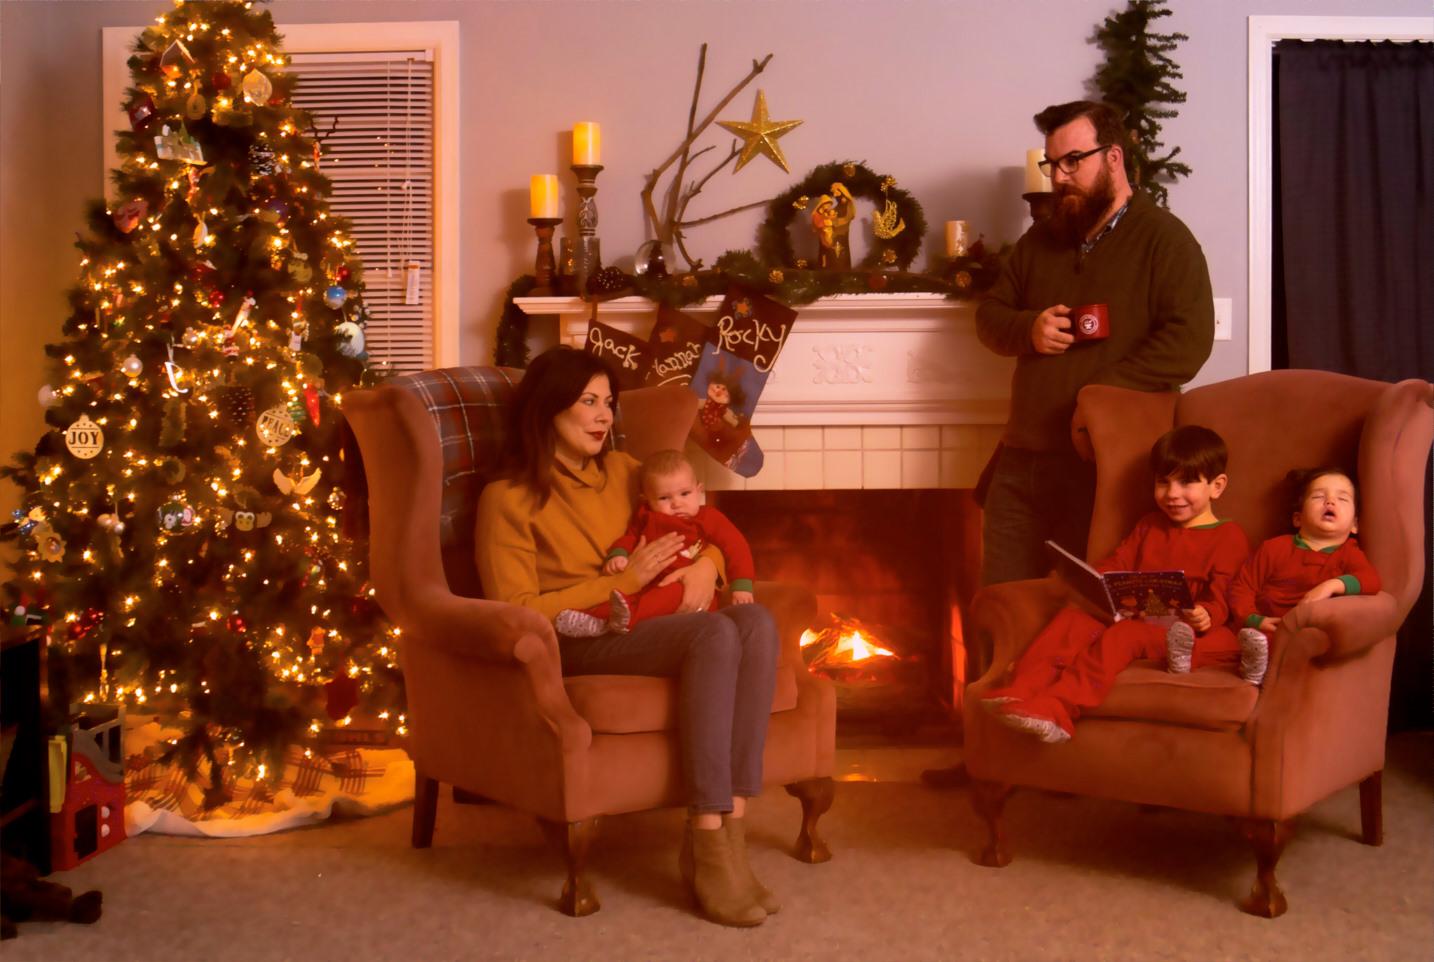 This family Christmas portrait took tremendous planning and testing, all of which was done before the kids ever got in the shot. Even so, we still had to just put Hannah to bed and then bring her out while asleep. Sometimes they just don't want to cooperate.